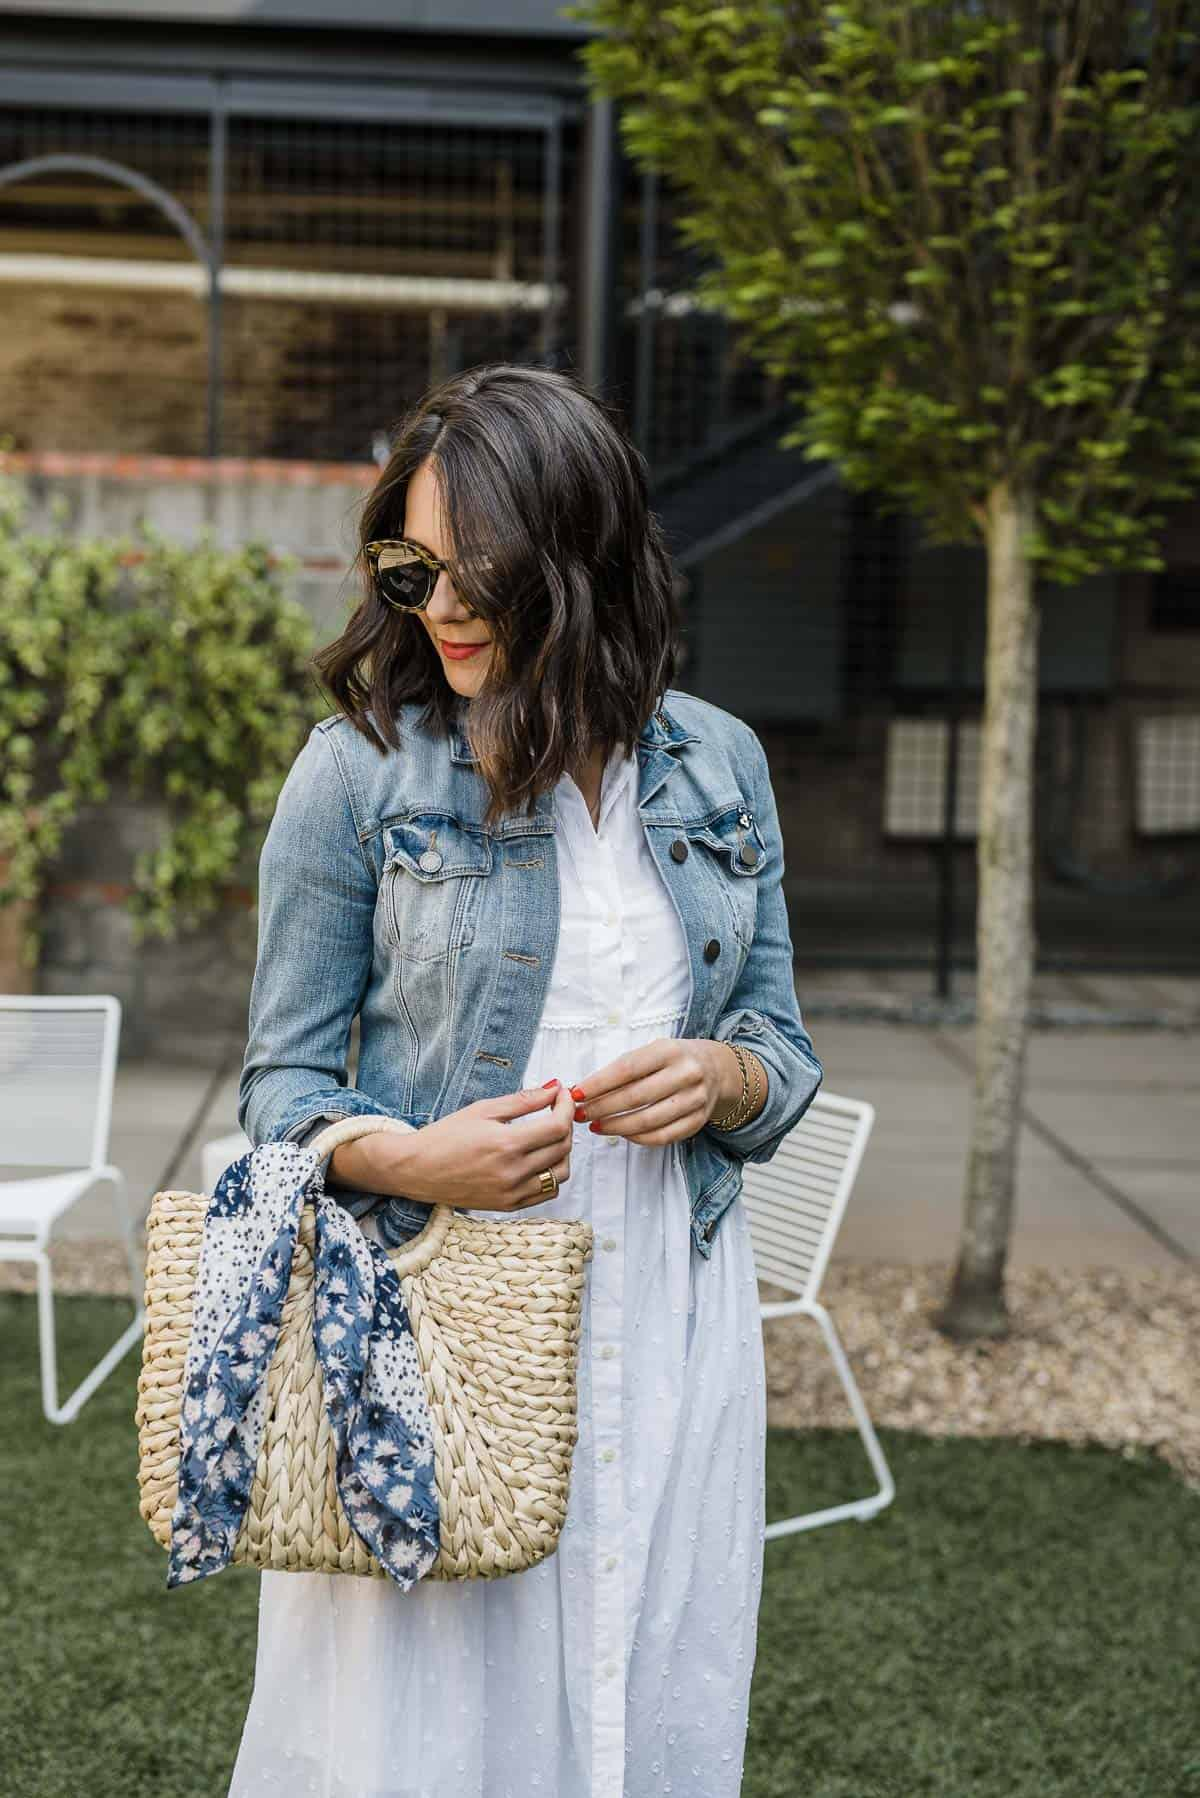 Jessica is wearing  The Jean Jacket in Pinter Wash and Clipdot Midi Shirtdress from Madewell